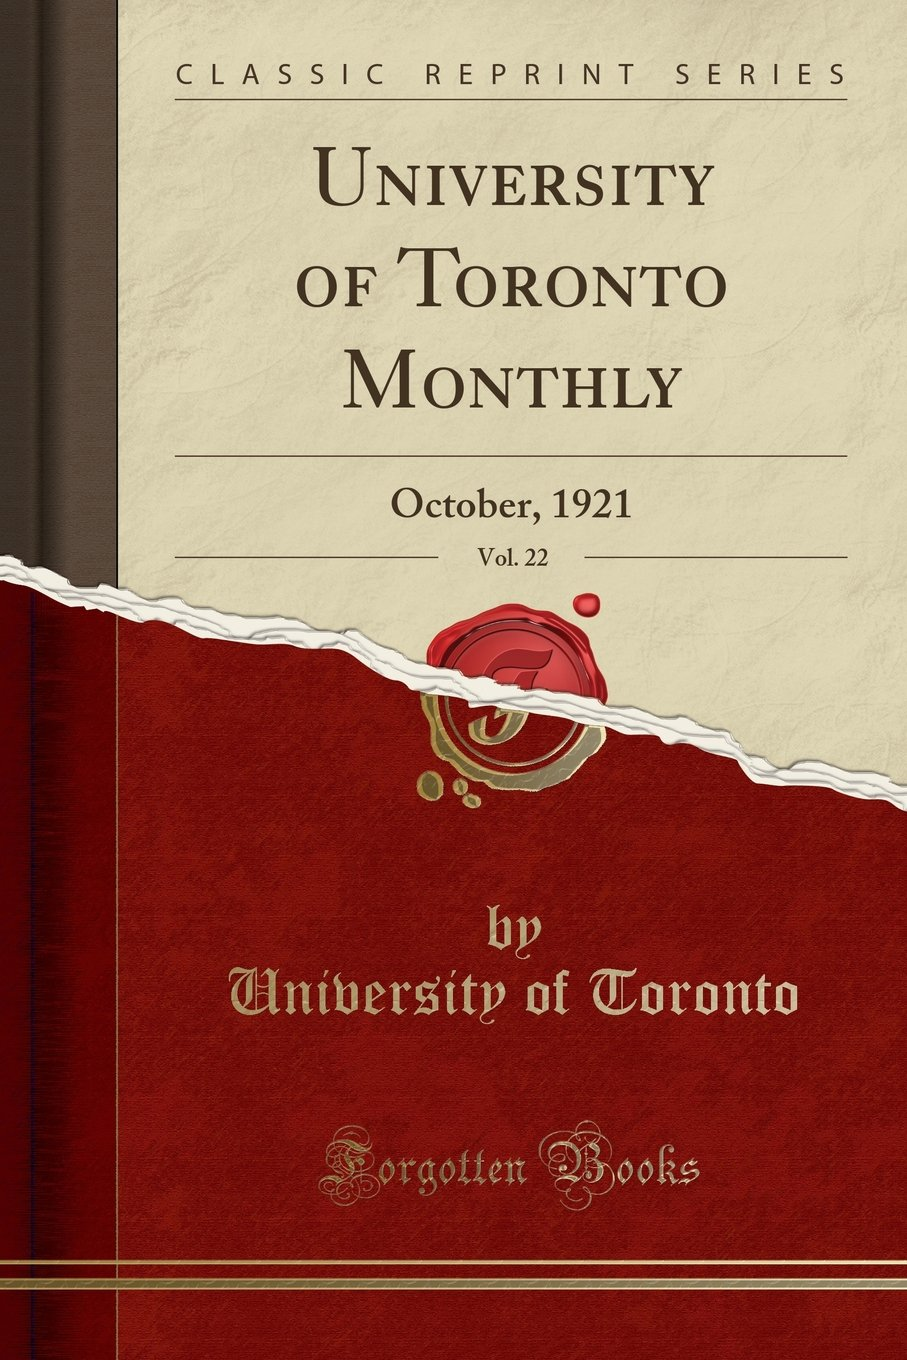 University of Toronto Monthly, Vol. 22: October, 1921 (Classic Reprint) ebook